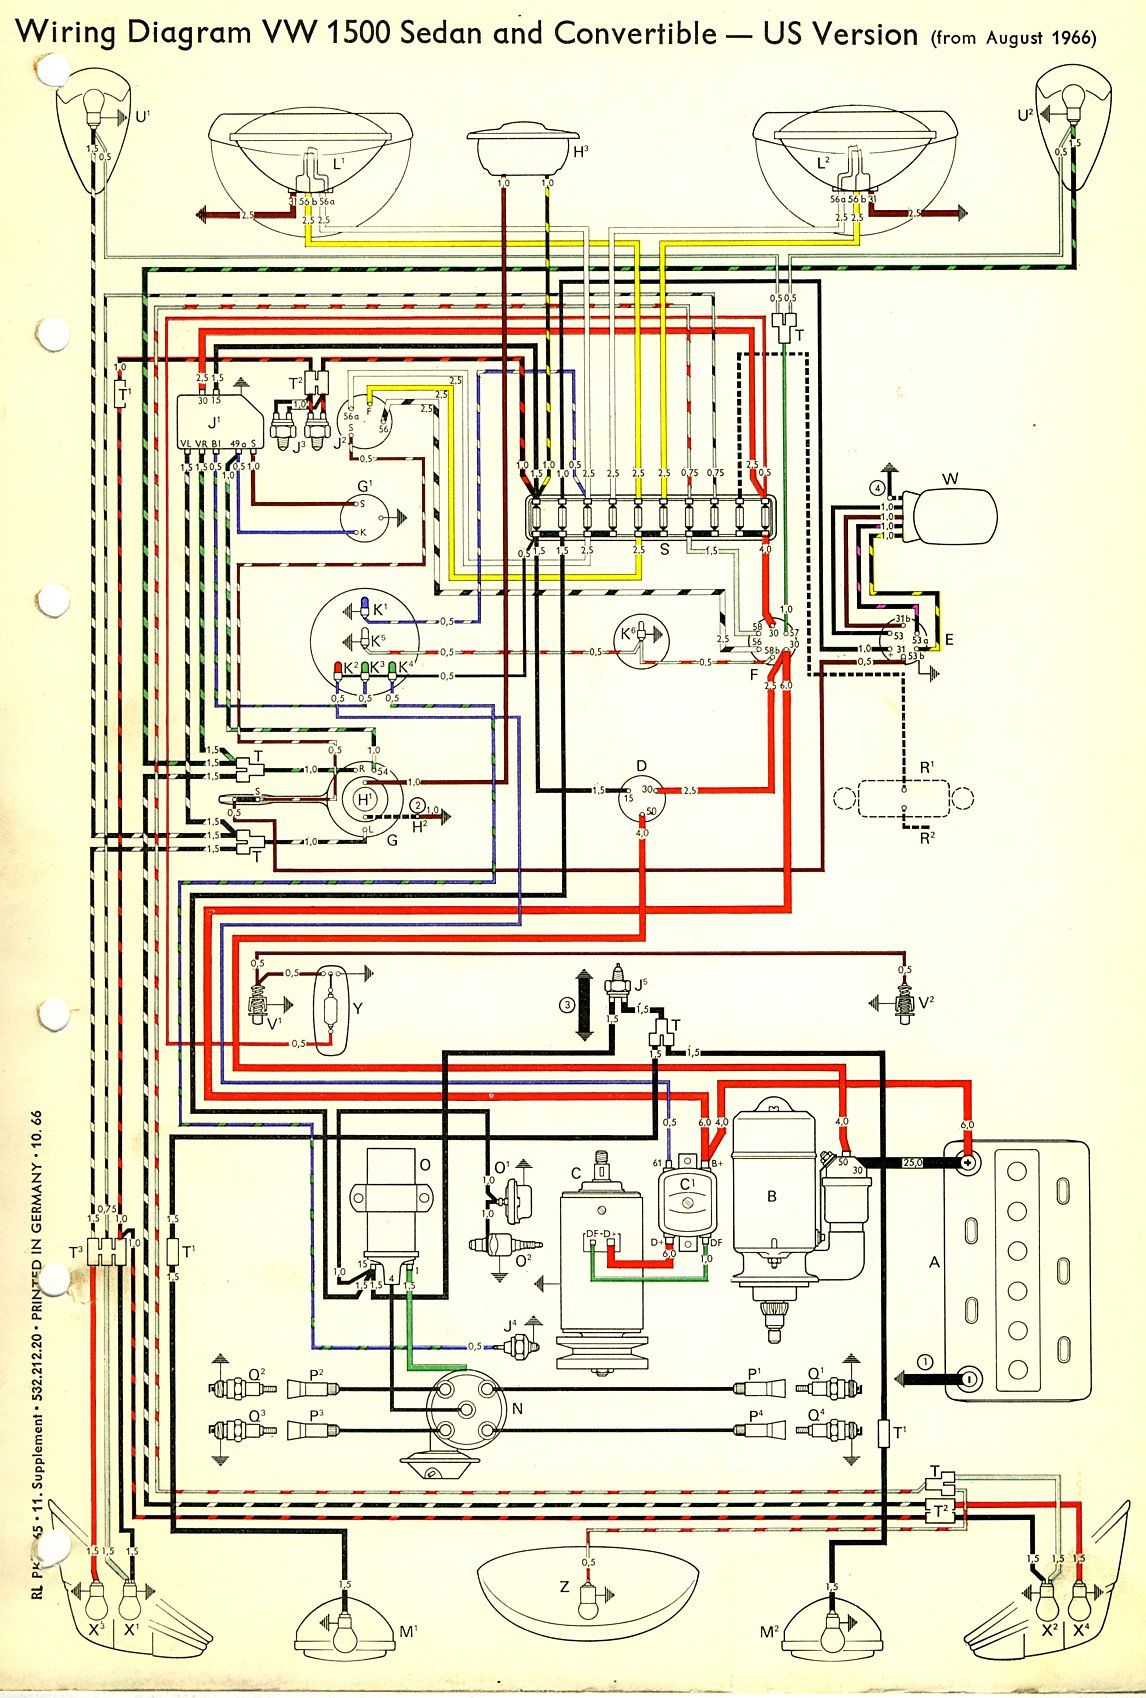 2000 vw beetle wiring diagram on wiring diagram2001 vw beetle wiring diagram box wiring diagram 2000 [ 1146 x 1698 Pixel ]